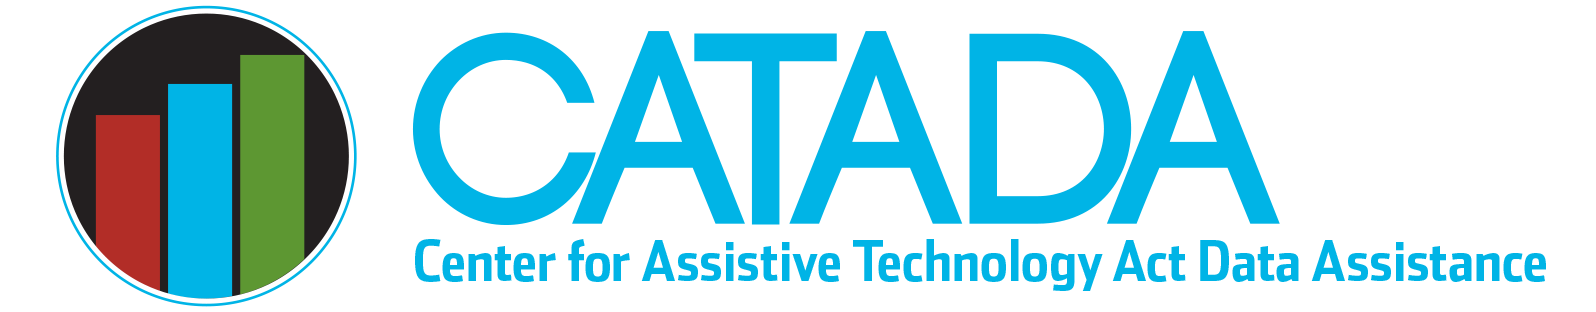 Center for Assistive Technology Act Data Assistance logo